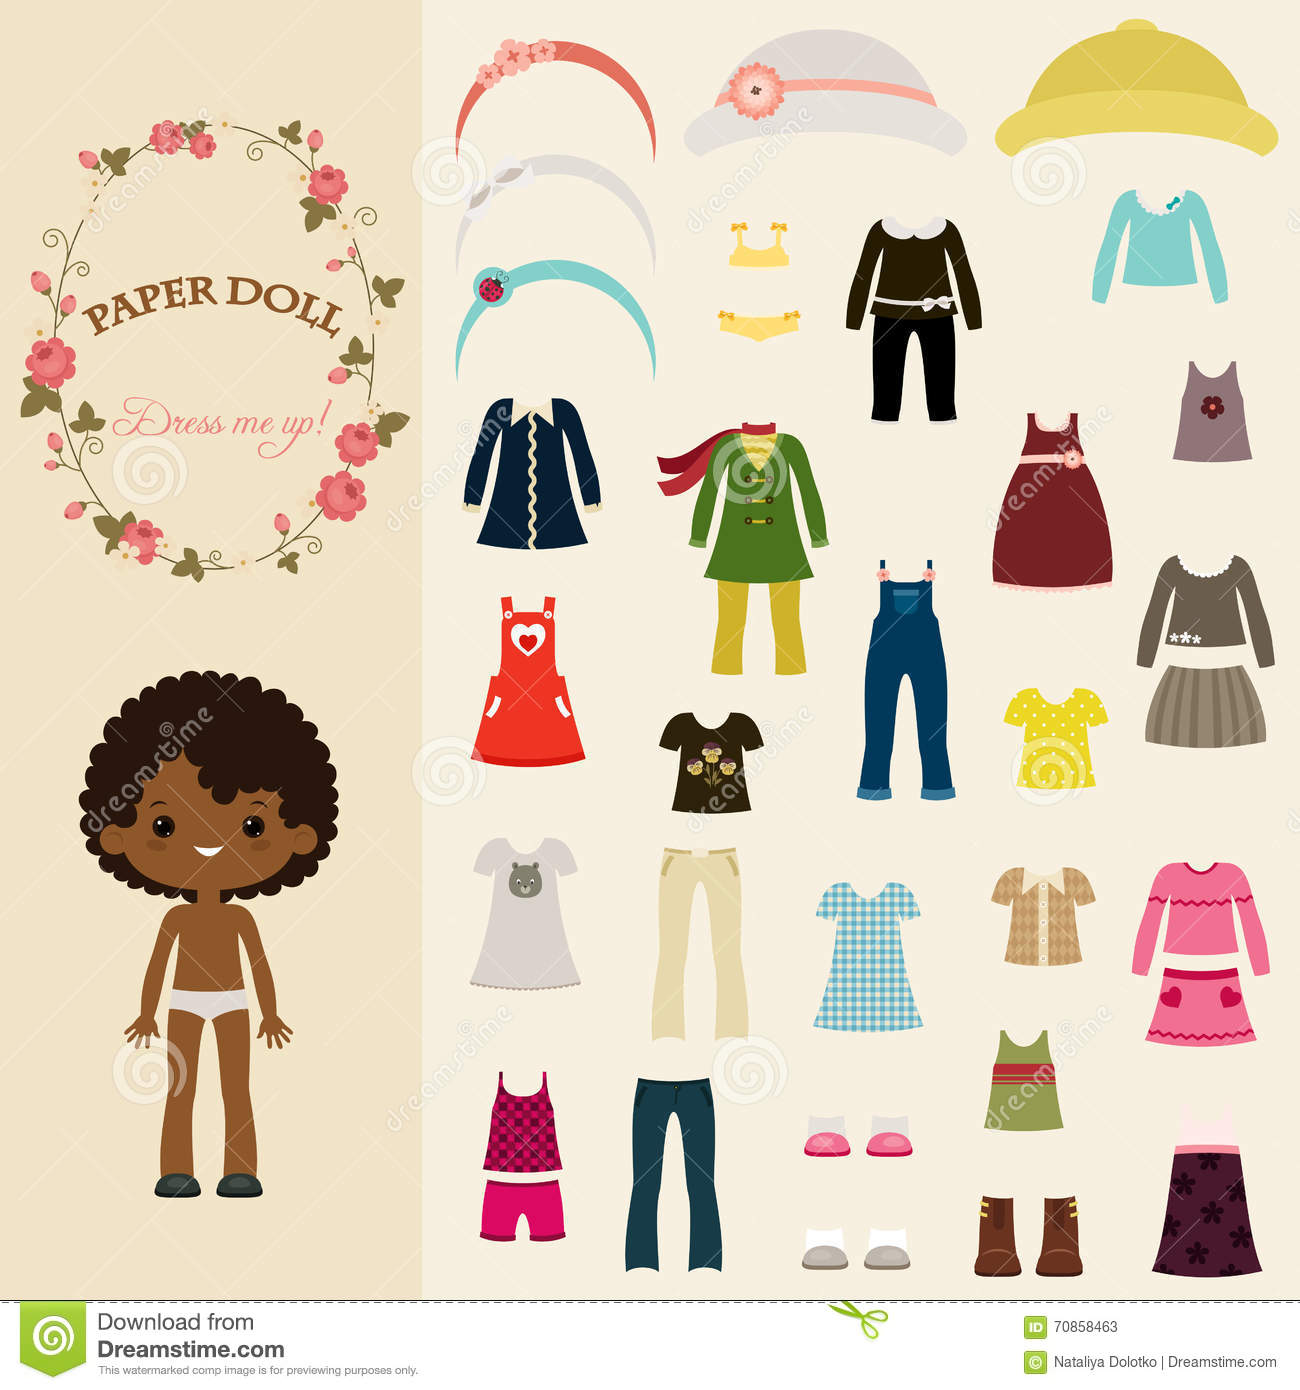 paper doll dress up I've been looking out for some diy busy bags, restaurant kits and quiet time activities that would be suitable for toddlers and preschoolers that would encourage new vocabulary words, encourage color recognition and imaginary play these free printable winter paper doll dress up busy bag clothes was the.